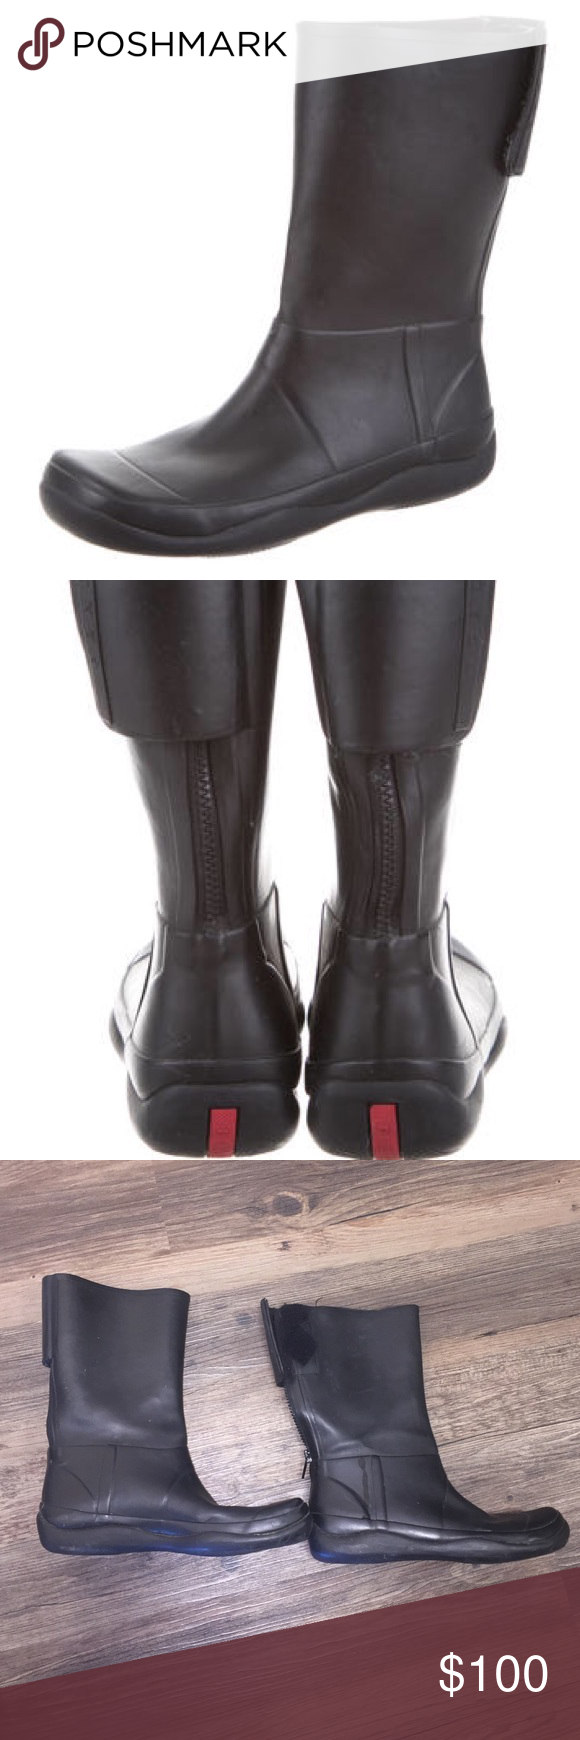 Prada Rubber Boots Size 38/8 US   Boots, Rubber boots, Prada